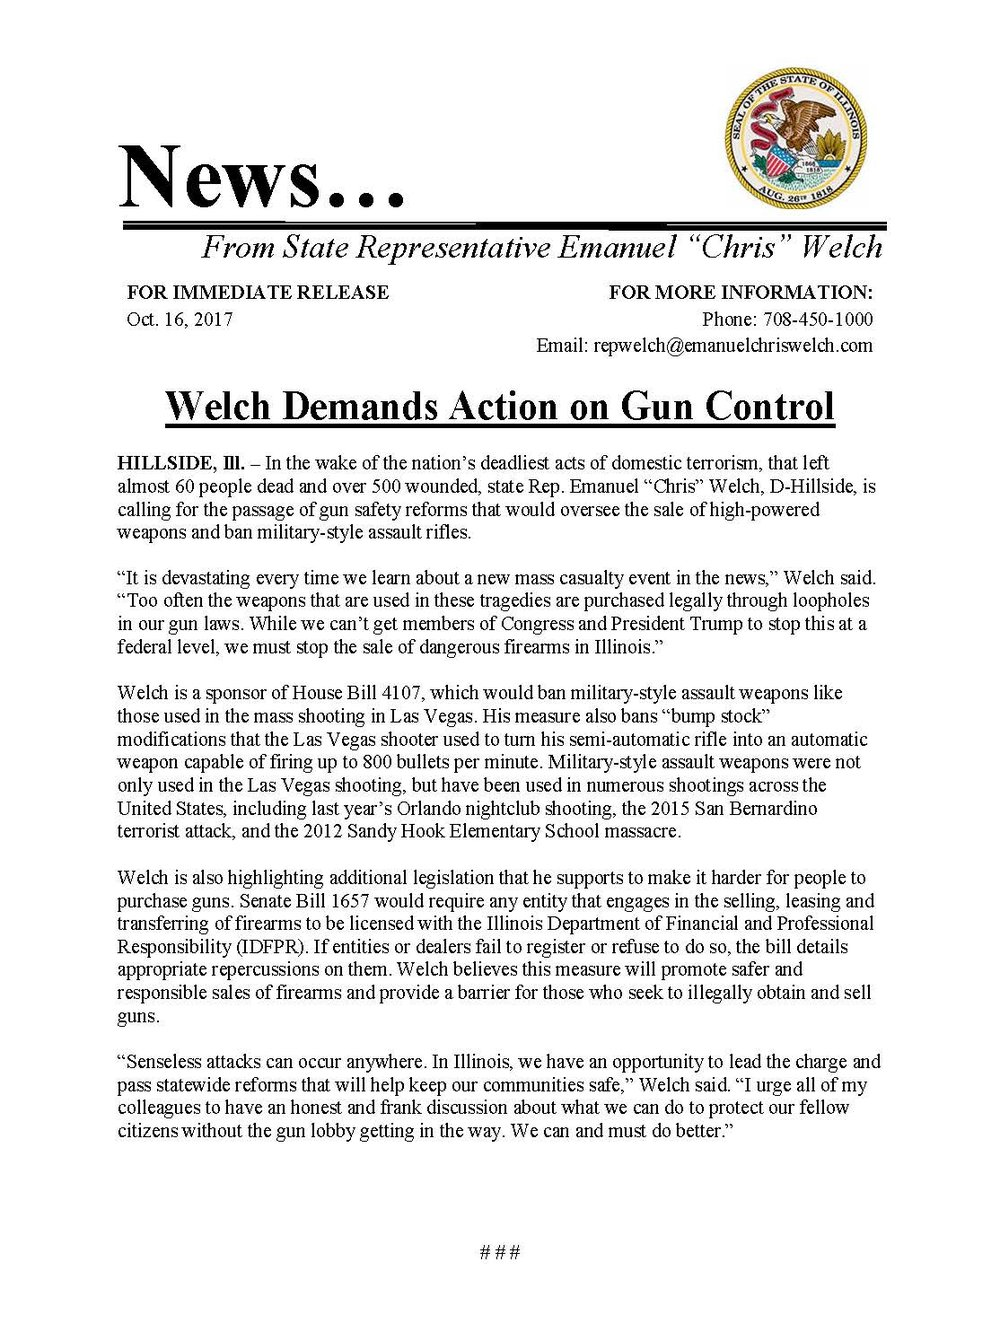 Welch Demands Action on Gun Control  (October 16, 2017)